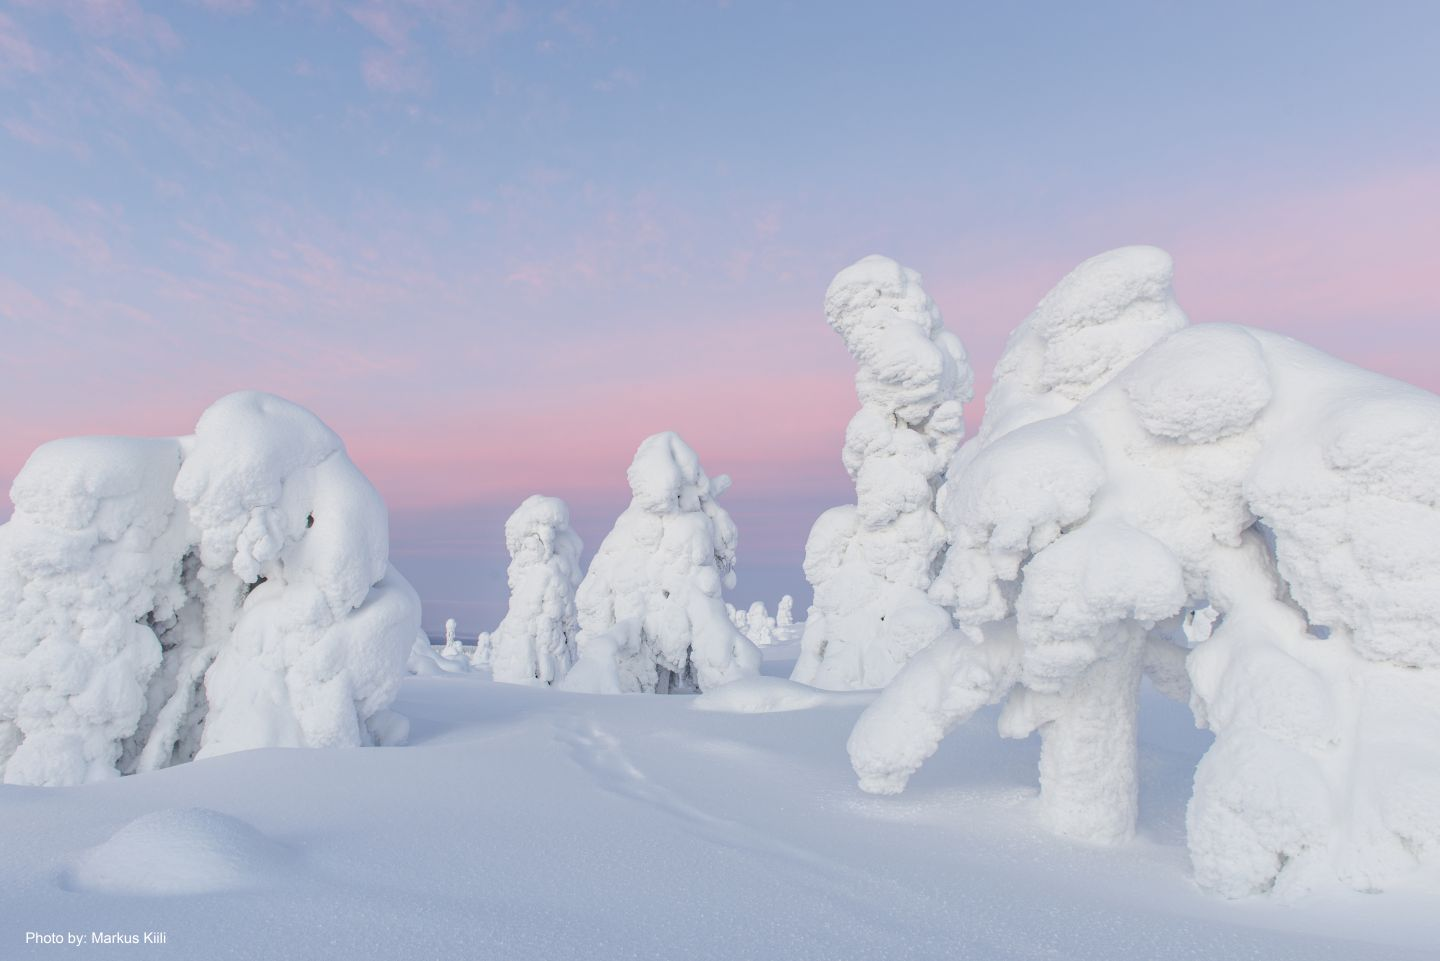 Snow-crowned trees in Riisitunturi National Park in Posio, Finland